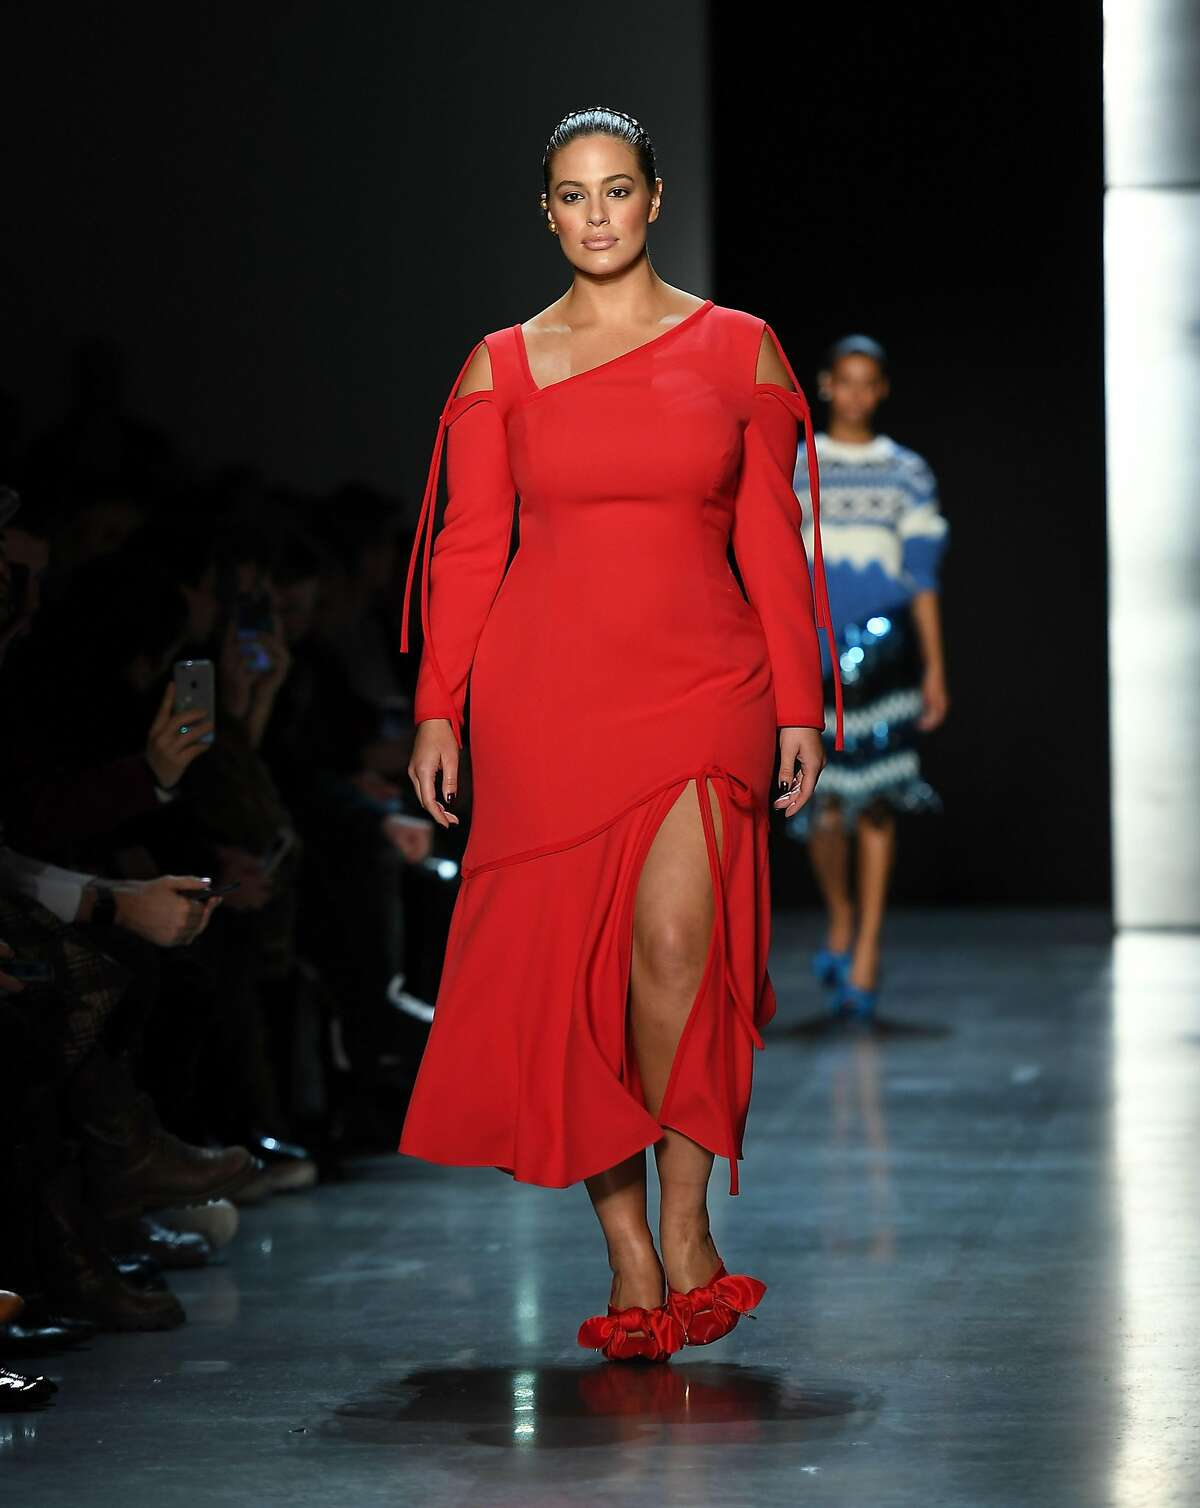 Model Ashley Graham walks the runway for Prabal Gurung during New York Fashion Week: The Shows at Gallery I at Spring Studios on February 11, 2018 in New York City. / AFP PHOTO / ANGELA WEISSANGELA WEISS/AFP/Getty Images